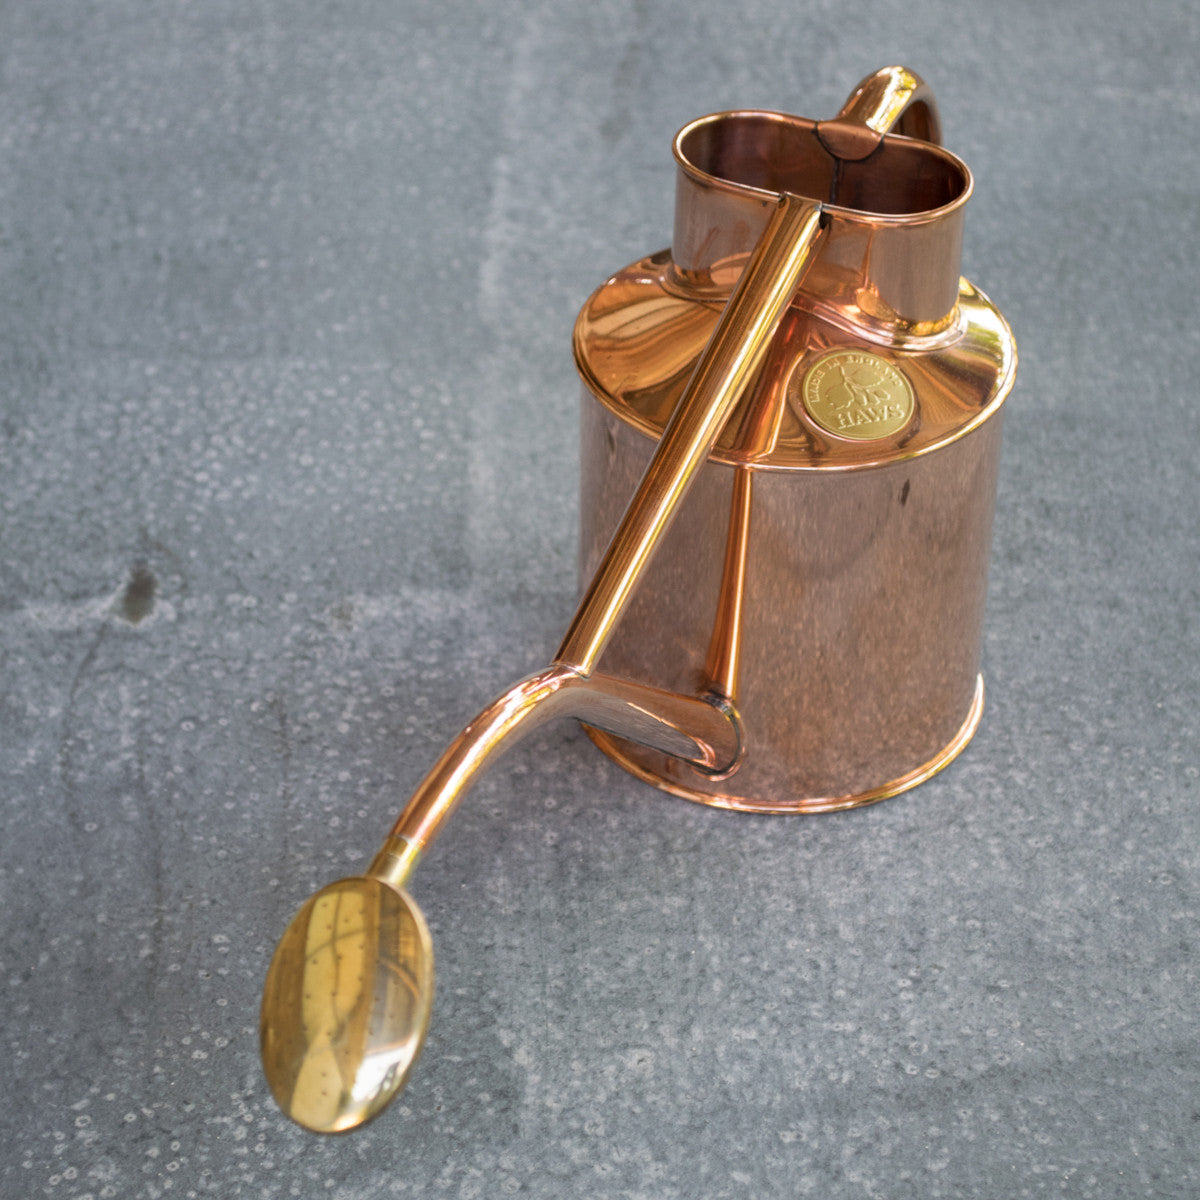 Haws indoor copper watering can 1 litre odgers and mcclelland exchange stores - Haws copper watering can ...